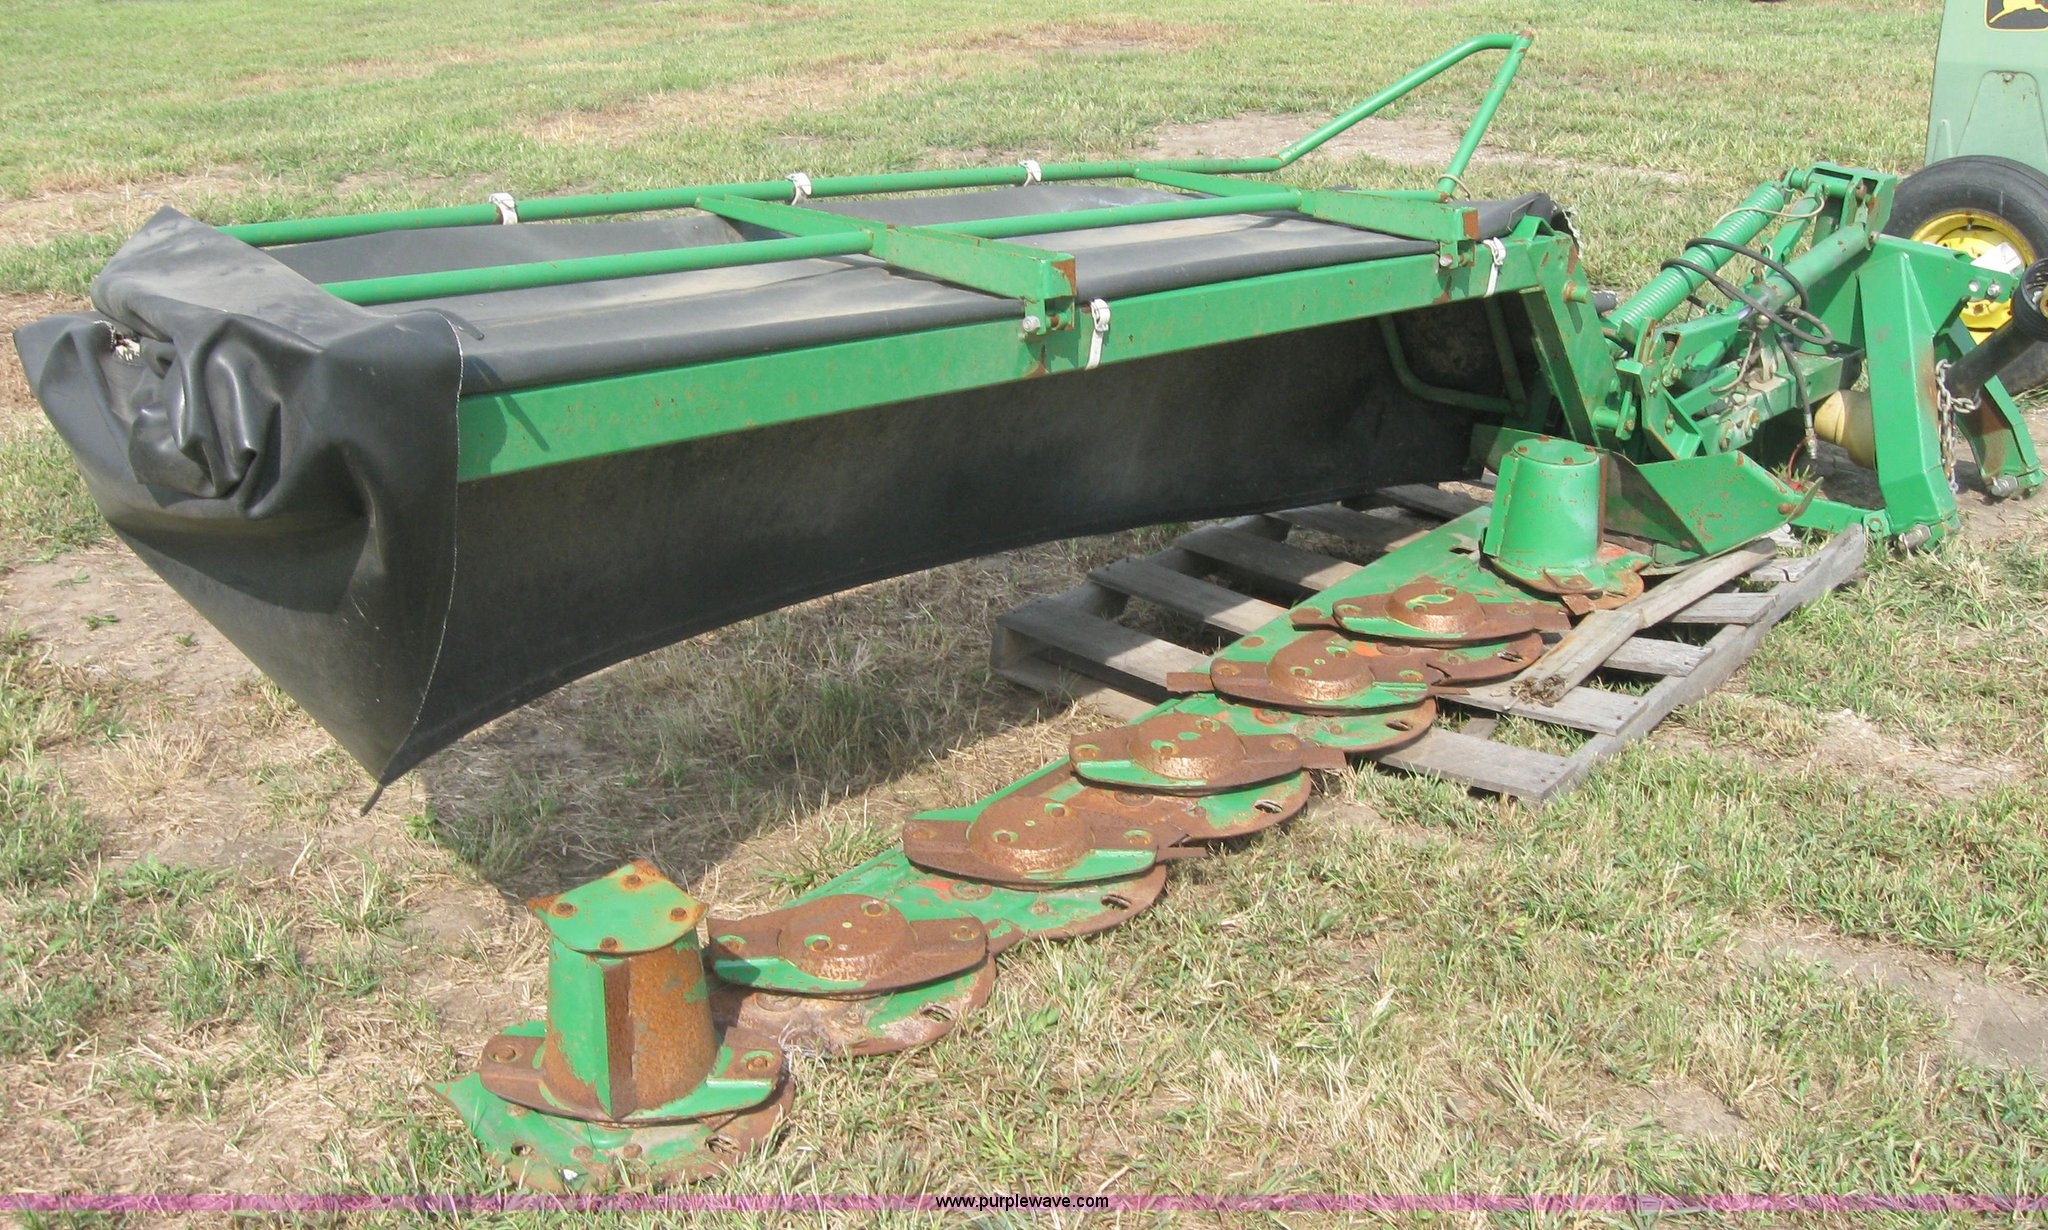 John Deere 275 disk mower | Item 2551 | SOLD! September 29 A